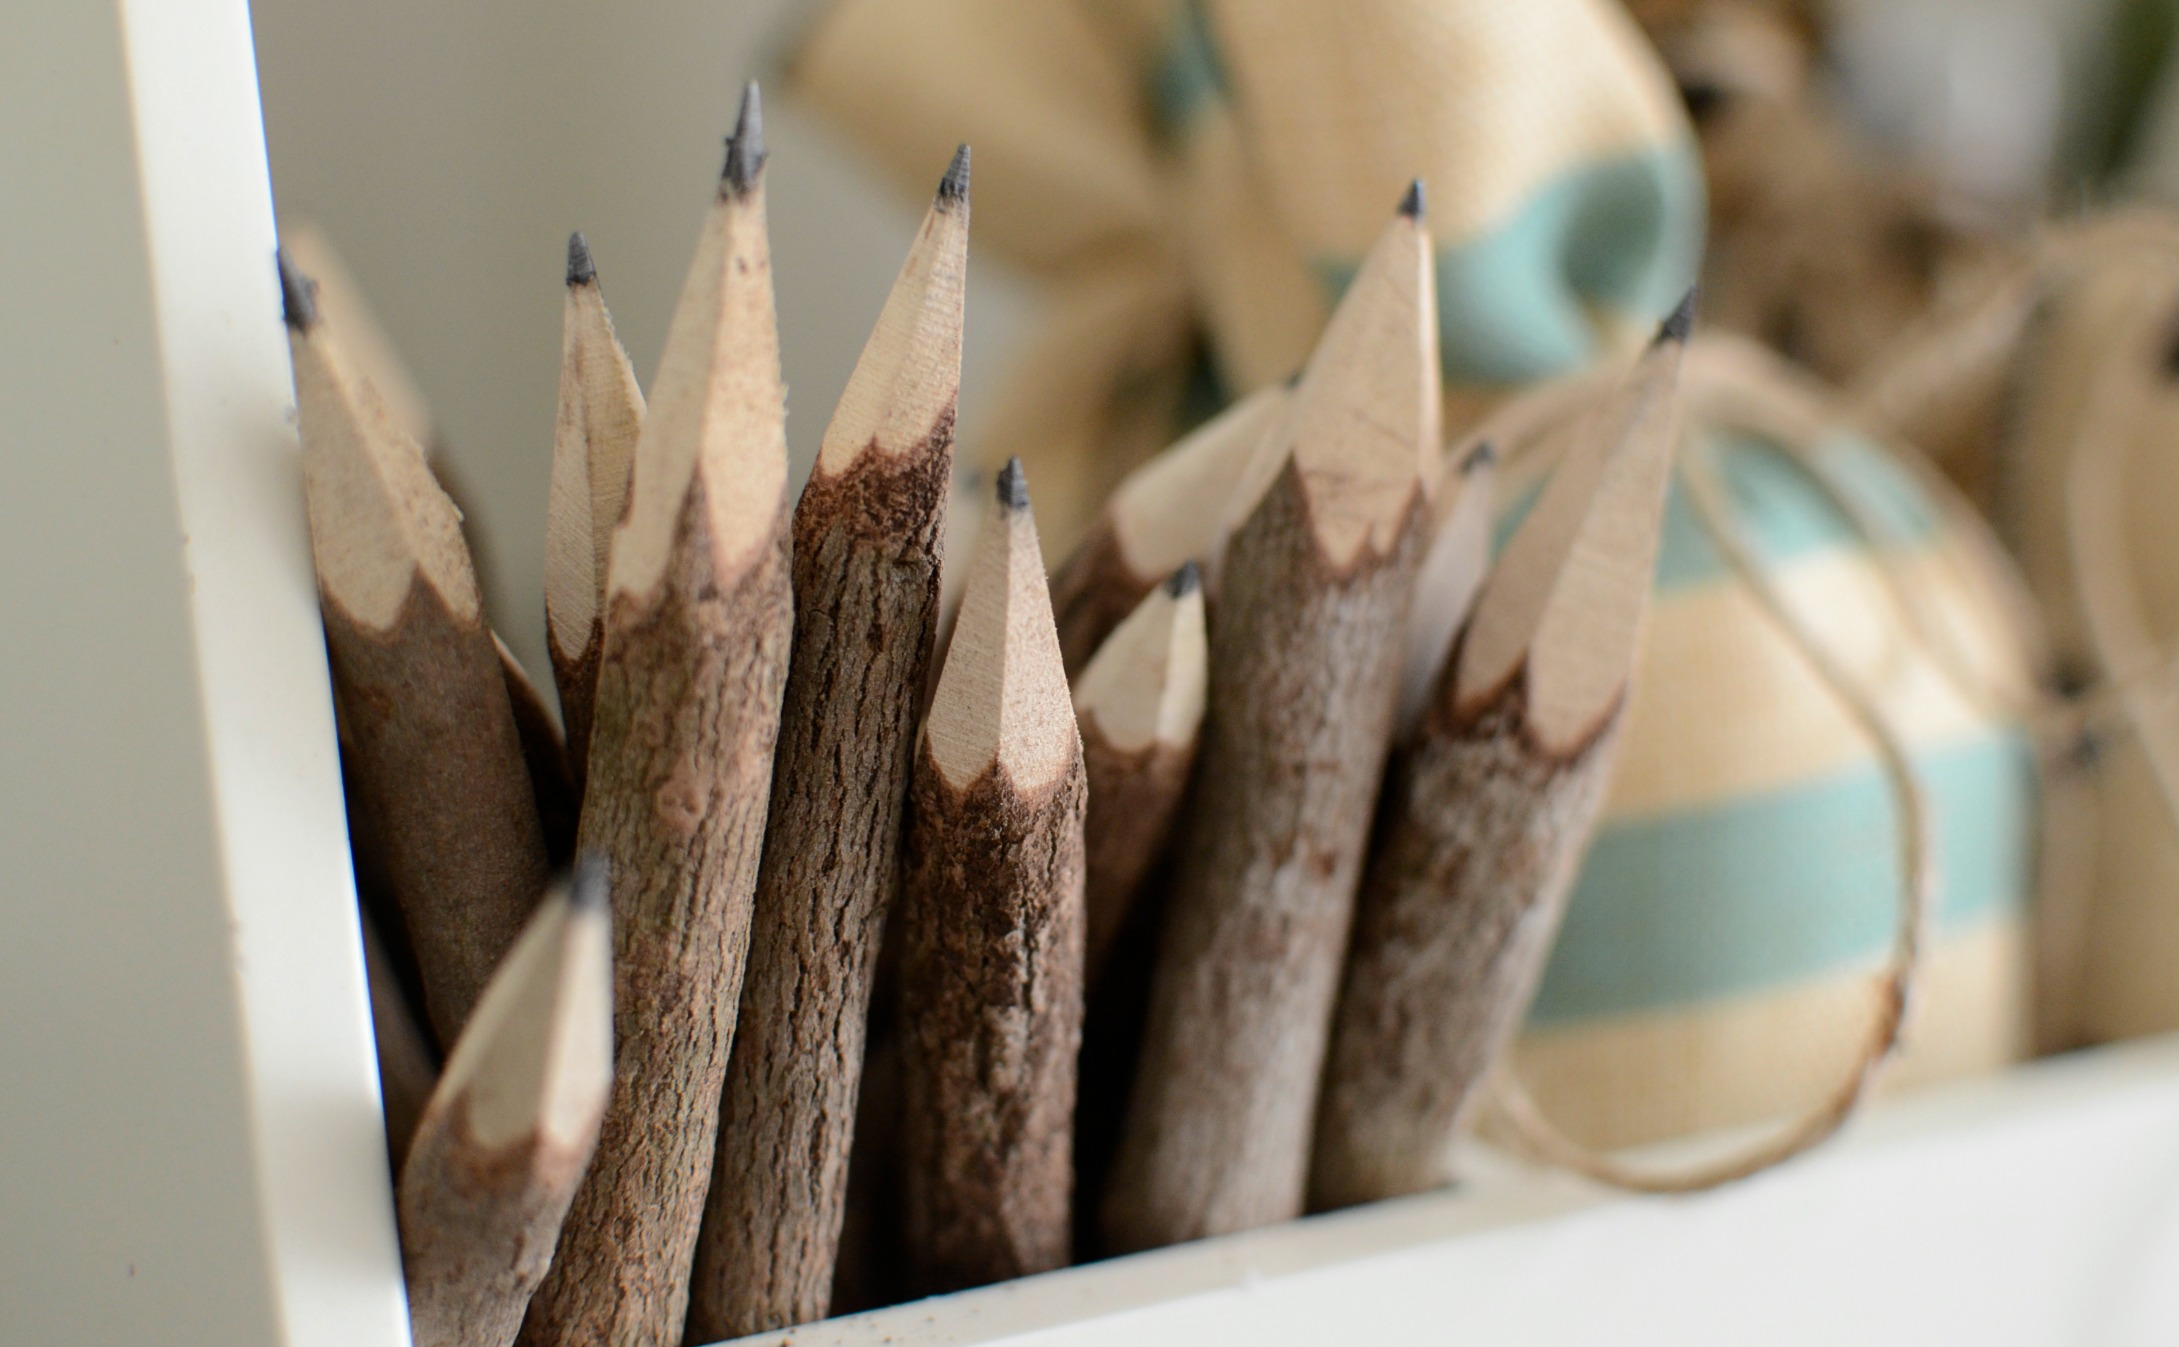 chunky twig pencils with bark